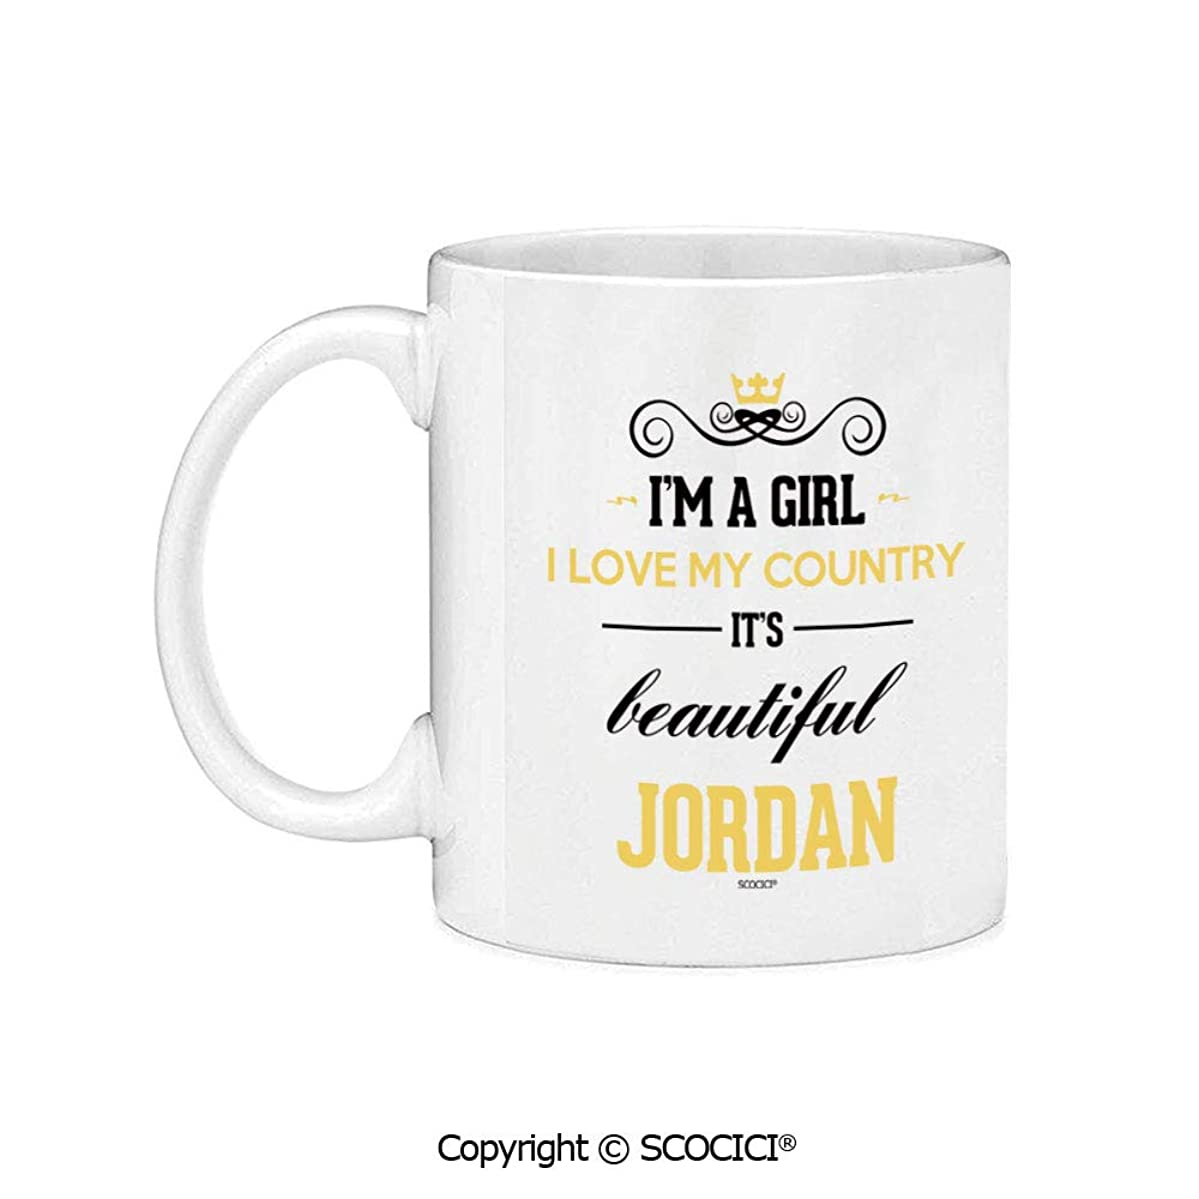 SCOCICI Novelty Ceramic Coffee Mug Tea Cup Gift I Am A Girl I Love My Country It Is Beautiful Jordan Unique Gift Idea on Any Occasion 11oz